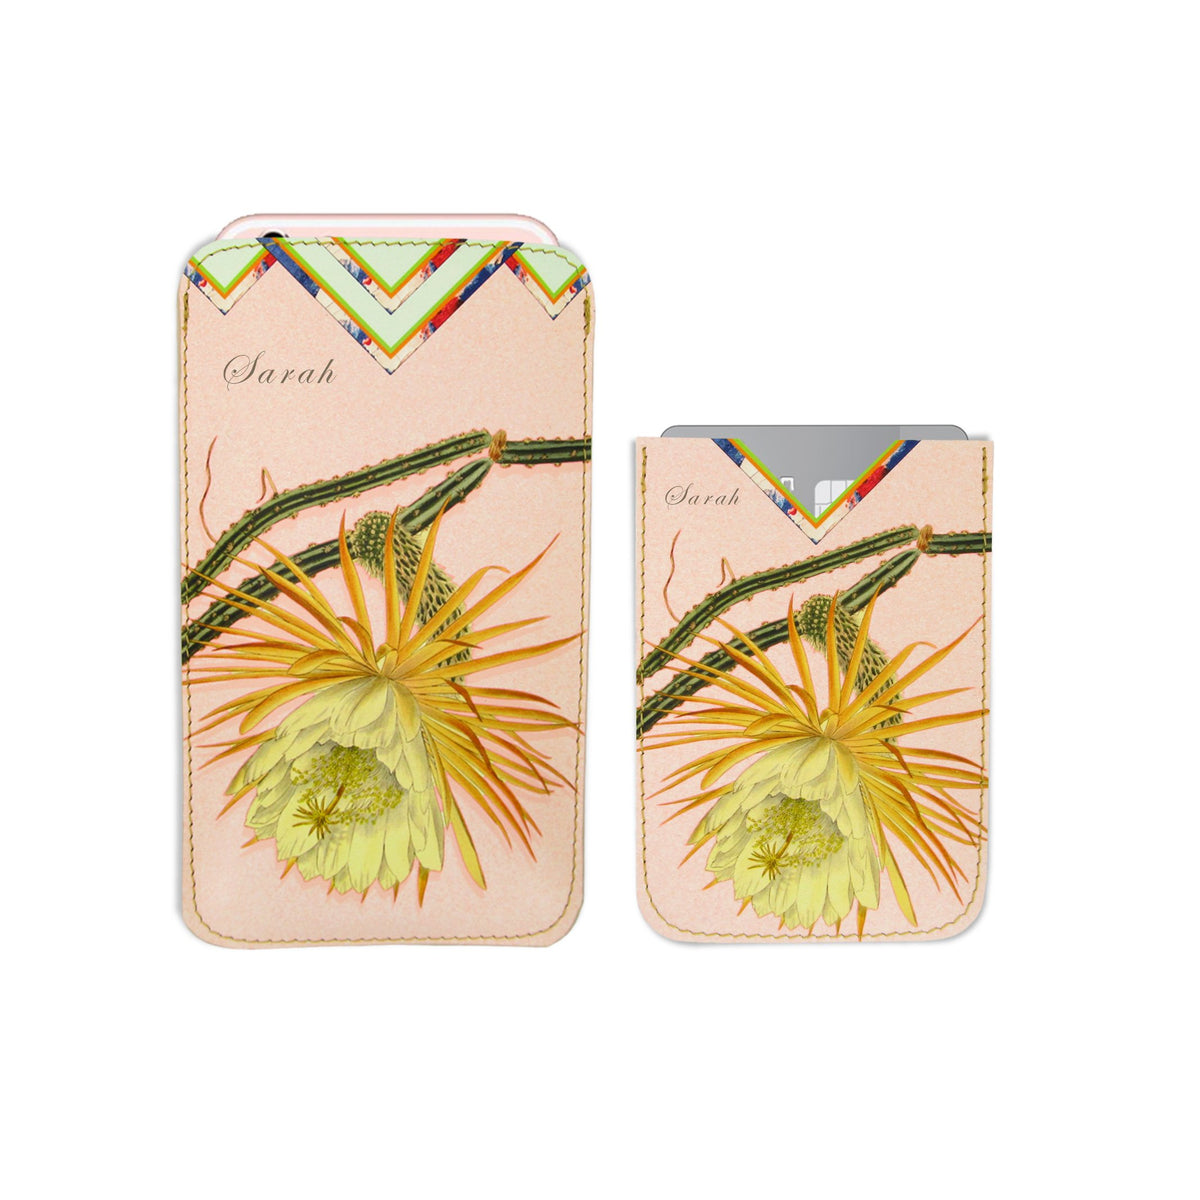 Leather Phone Case Sleeve - Cactus Flower Phone case Tovi Sorga iPhone X With personalisation Pink